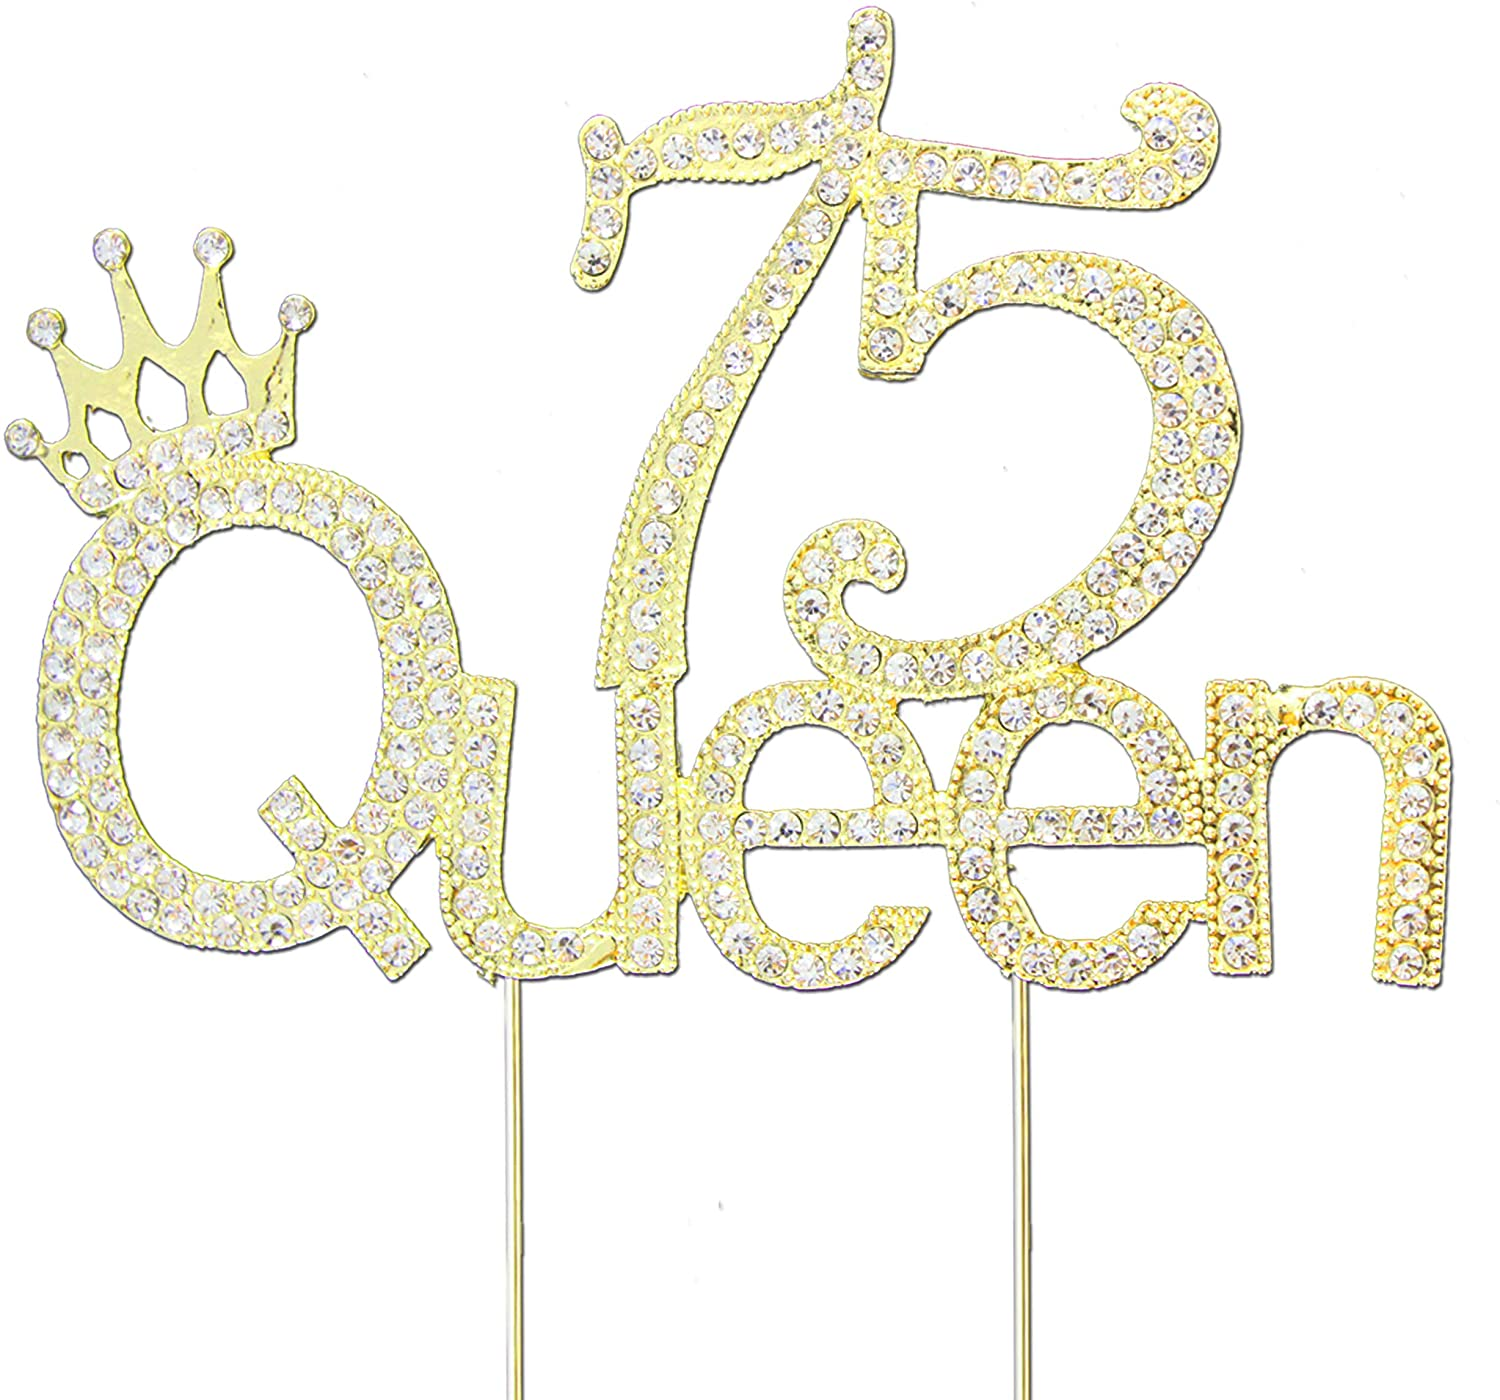 Glitter Crystal Gold Queen 75 Cake Topper | Happy 75th Birthday Rhinestone Diamond Bling Sparkle Gem Monogram Number Party Favor Decoration Idea Perfect Keepsake. (Queen 75 Gold)